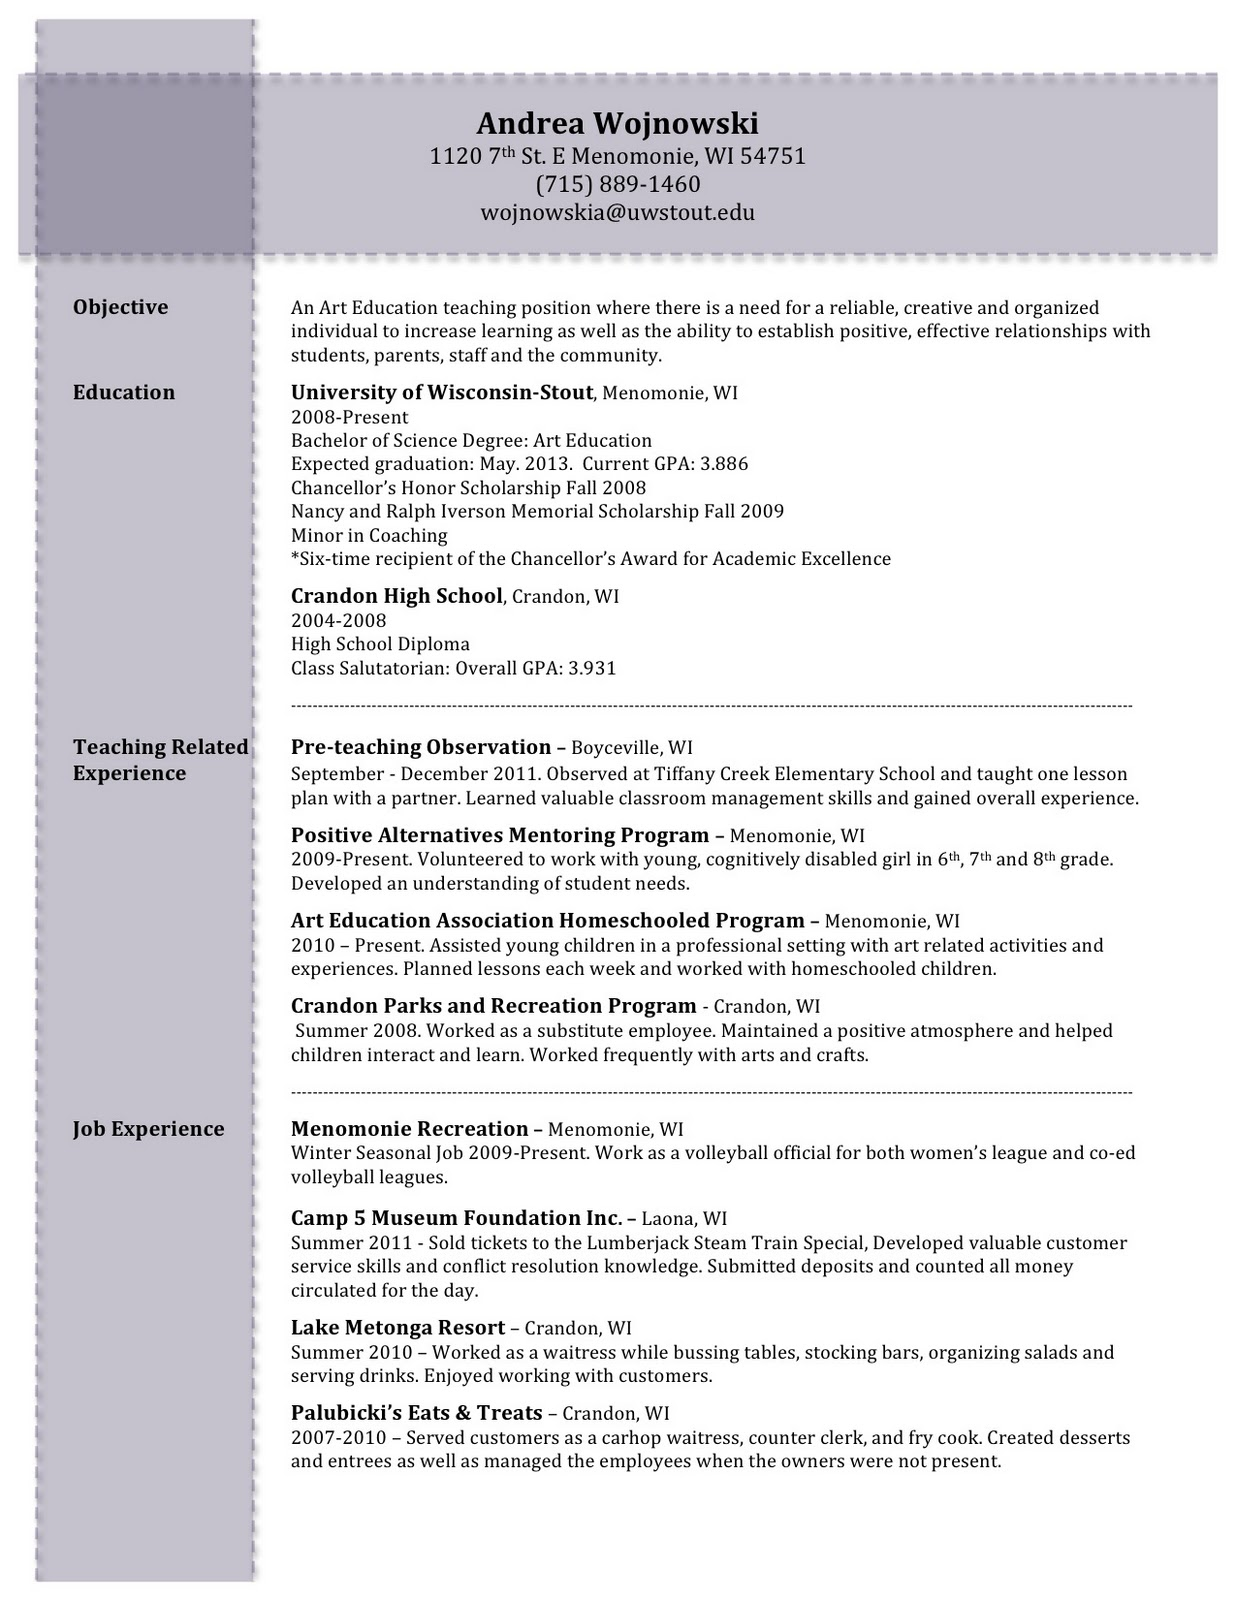 Put Gpa On Resume. include gpa on resumes physic minimalistics co ...